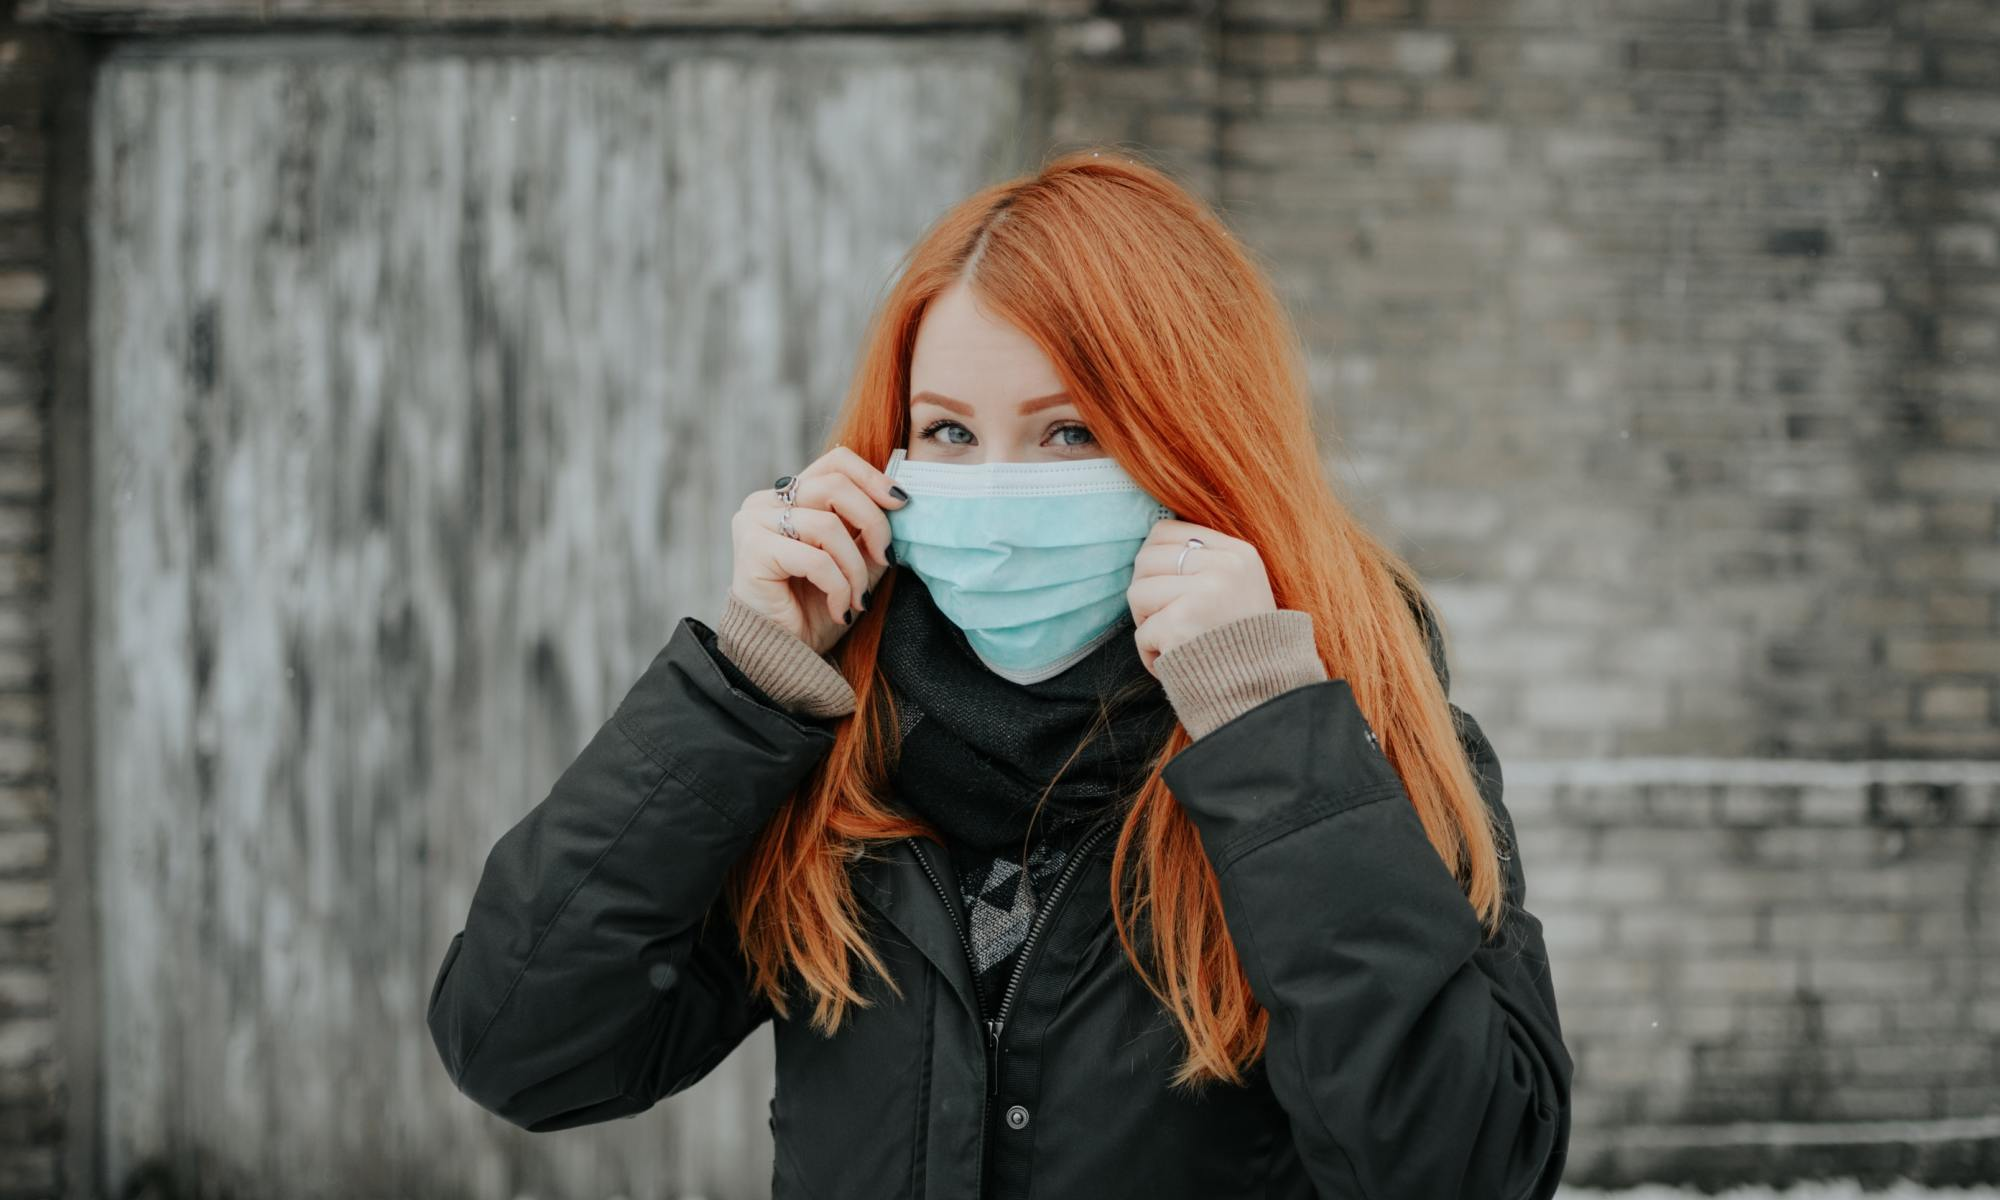 Coronavirus Pandemic Outbreak a woman wearing a face mask